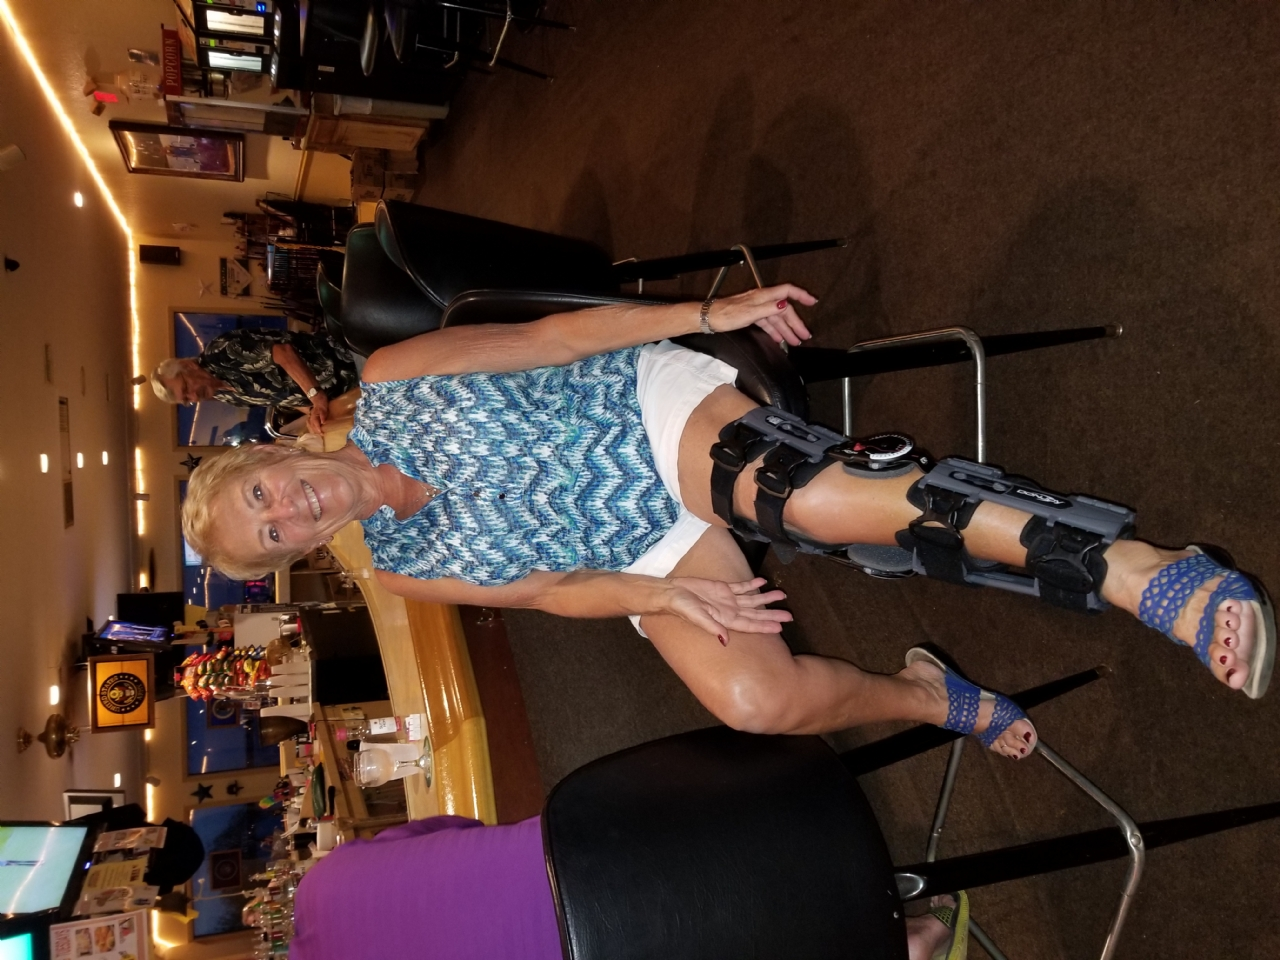 Even with a damaged leg, this member would not miss a day at the VFW.